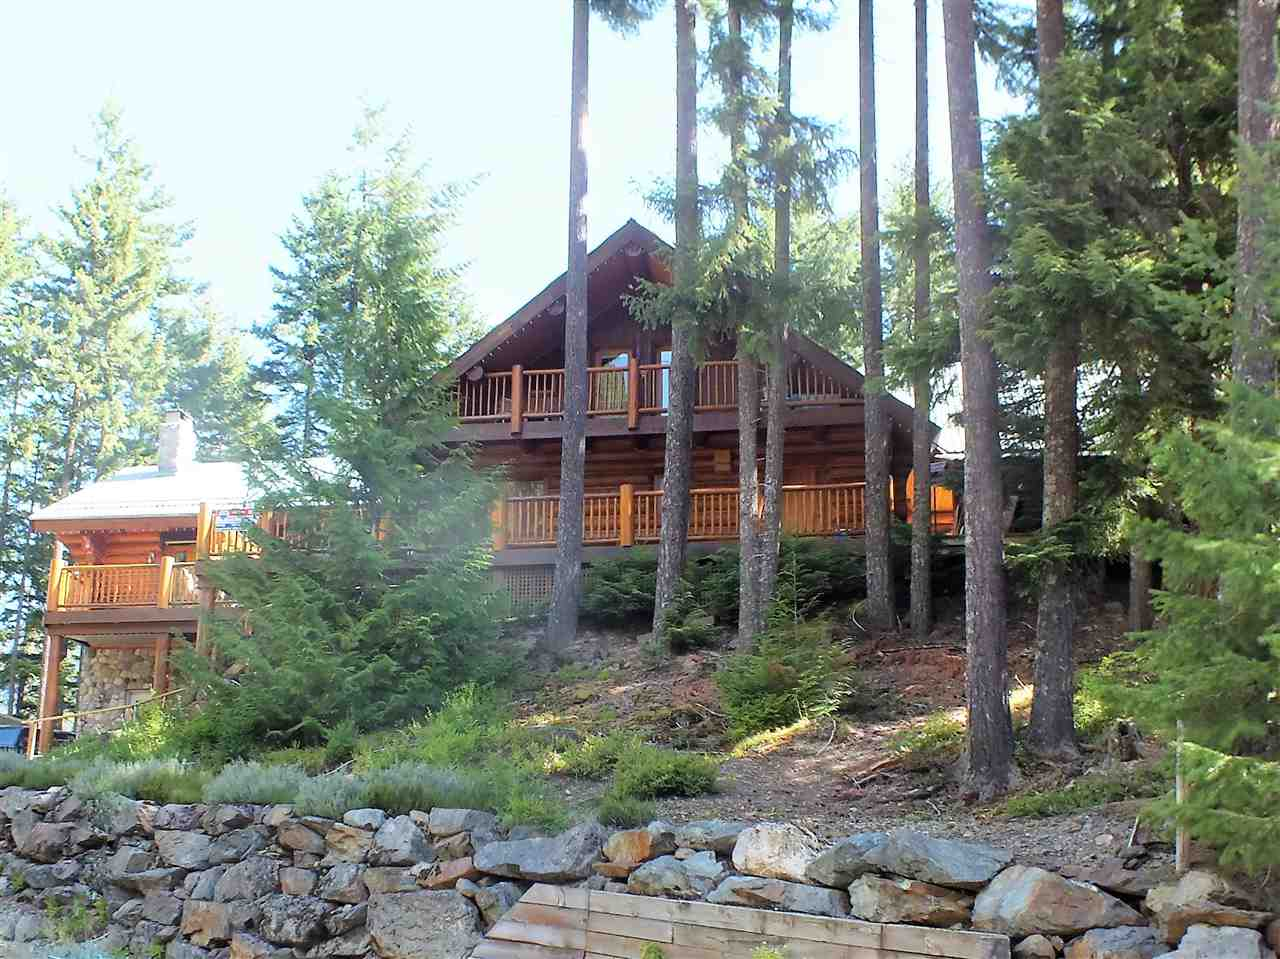 World class quality built log home on nearly 1/2 ac. Lot in scenic & affordable Sunshine Valley. Only 2 hrs. to Van. & the Okanagan Valley this Whistler-esque beauty is in the heart of 4 season recreation boasting nearby canoeing, hiking, biking, ATVing, snowshwoing, RV rec facilities & quick access to Manning Park Lodge & ski hill. The home features ceiling, floor to ceiling rock F/P, appliacens, ensuite bath w/jetted soaker tub & much more. Exterior highlights include front & side driveways, RV parking, carport & garage/workshop, expansive decking, from this partially fenced double lot. Needs to be seen to appreciate all the features.